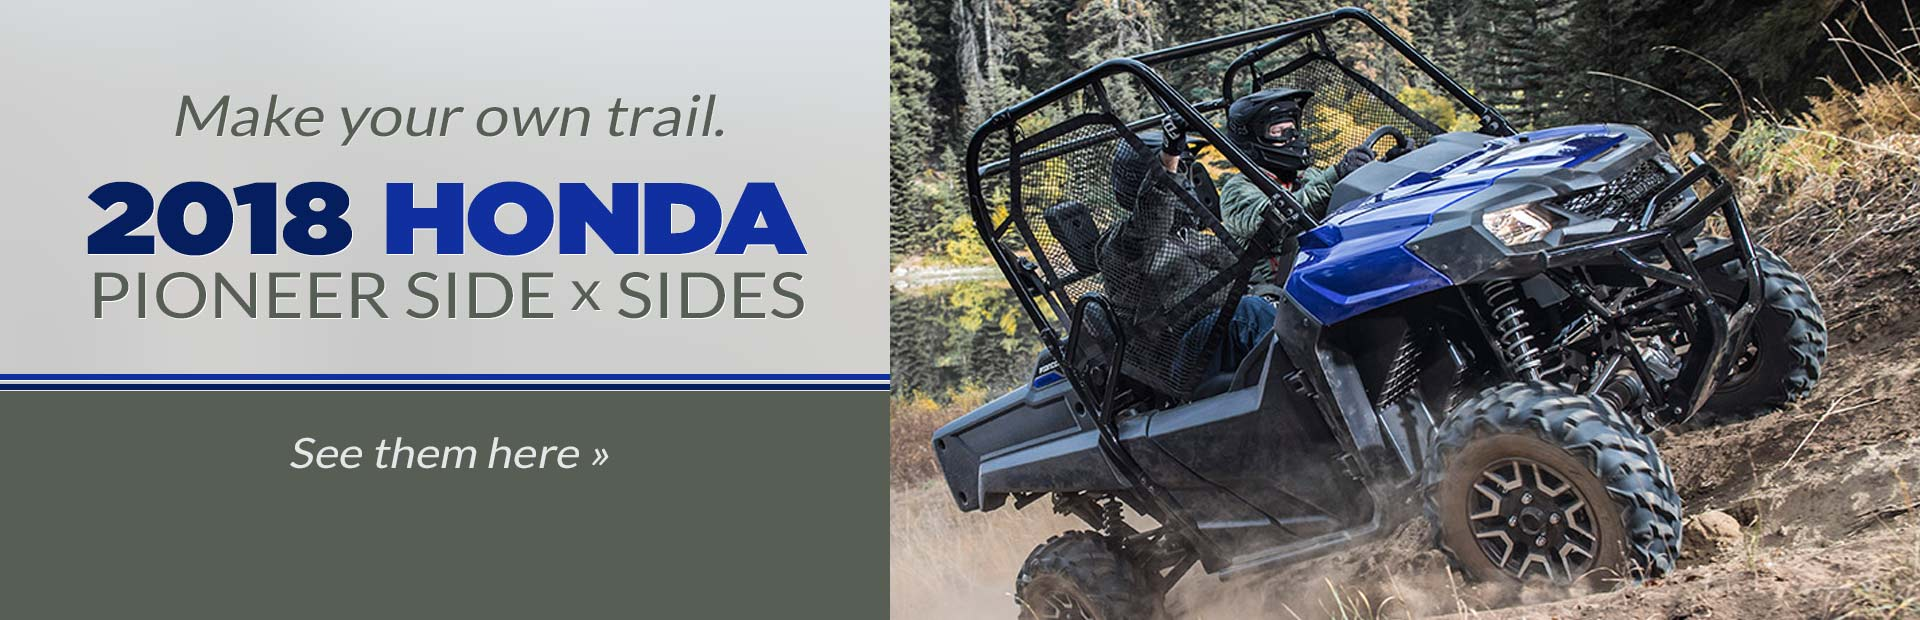 2018 Honda Pioneer Side X Sides Click Here To View The Models